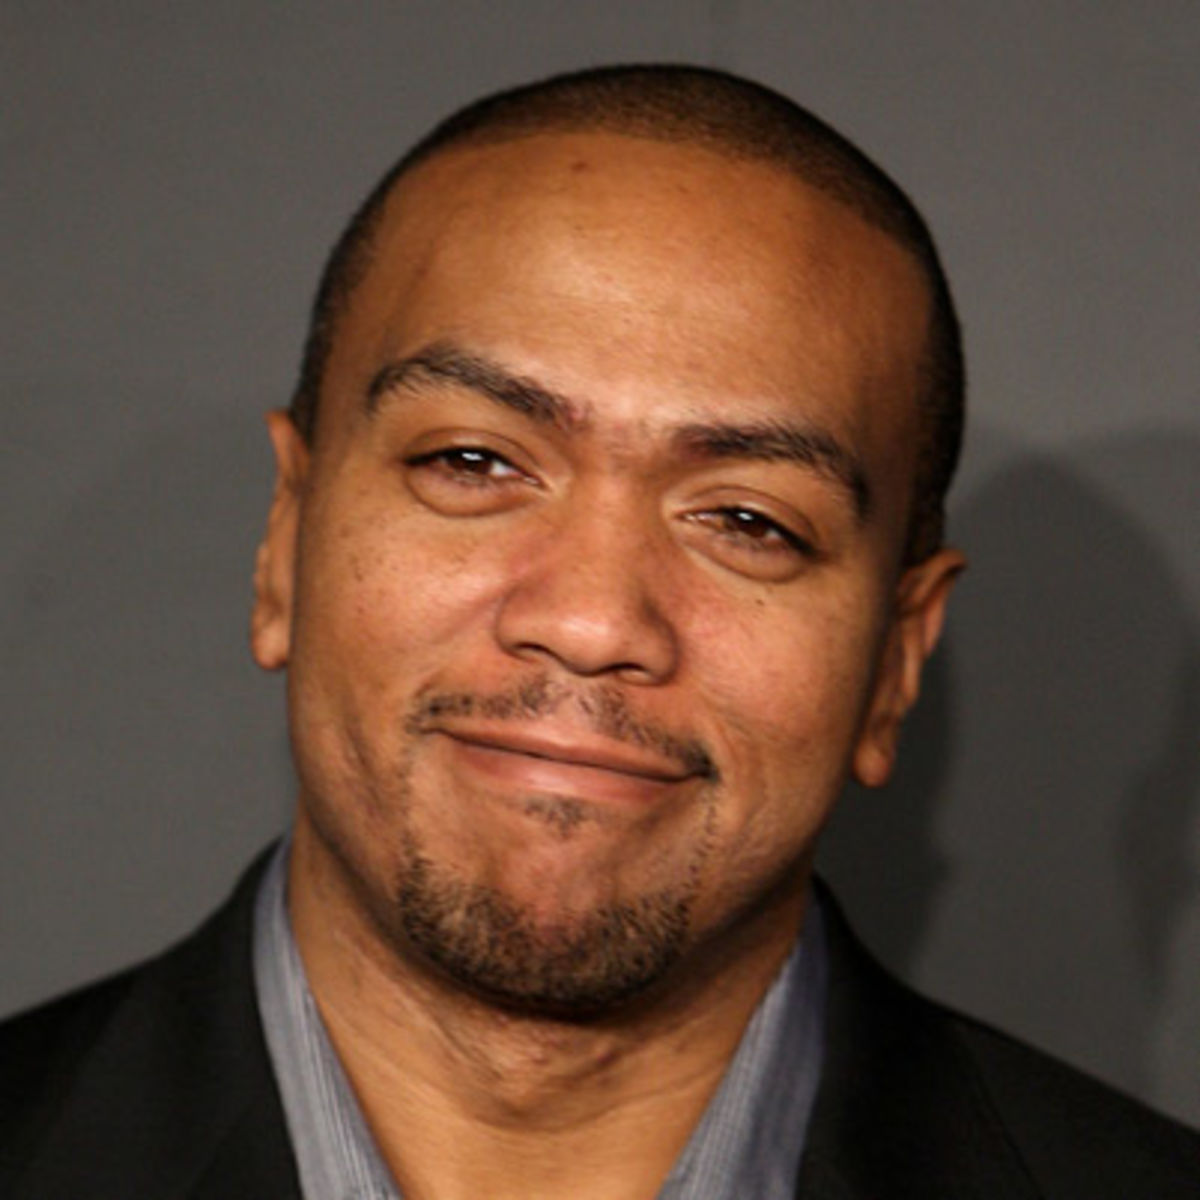 Squatter Causes $100K in Damages to Timbaland's Home